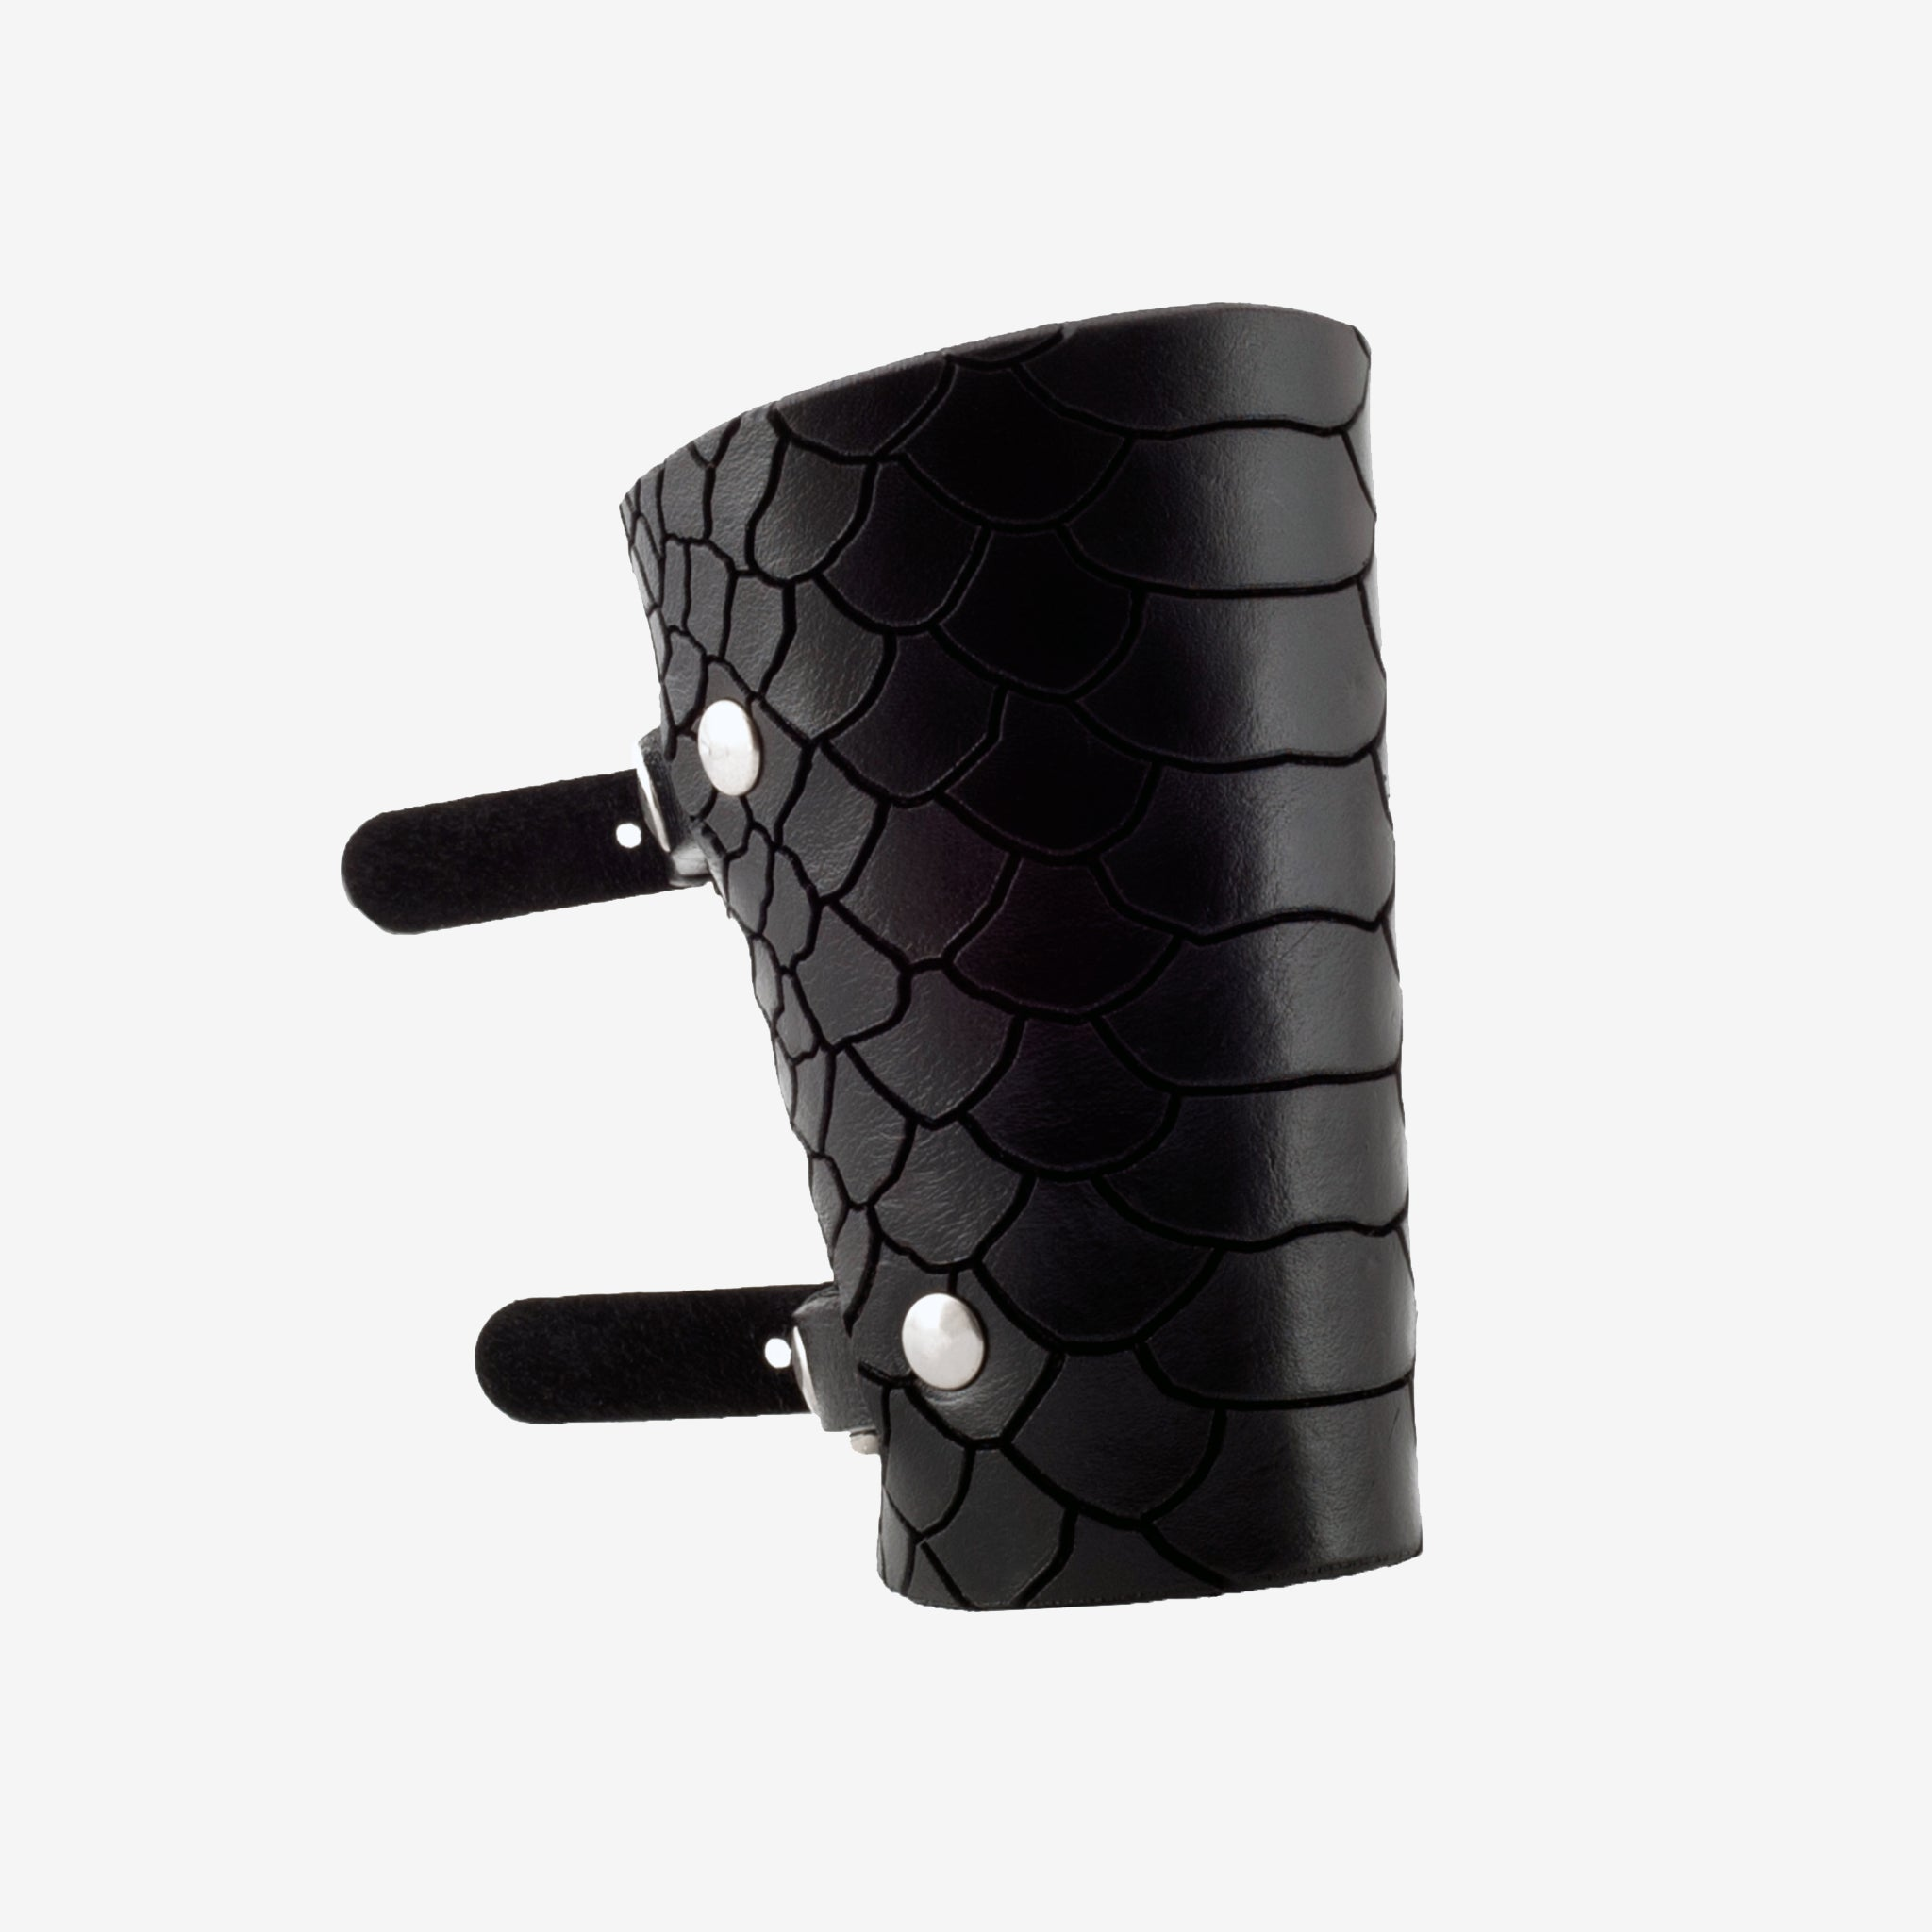 C51 Leather Cuff - 0770shop